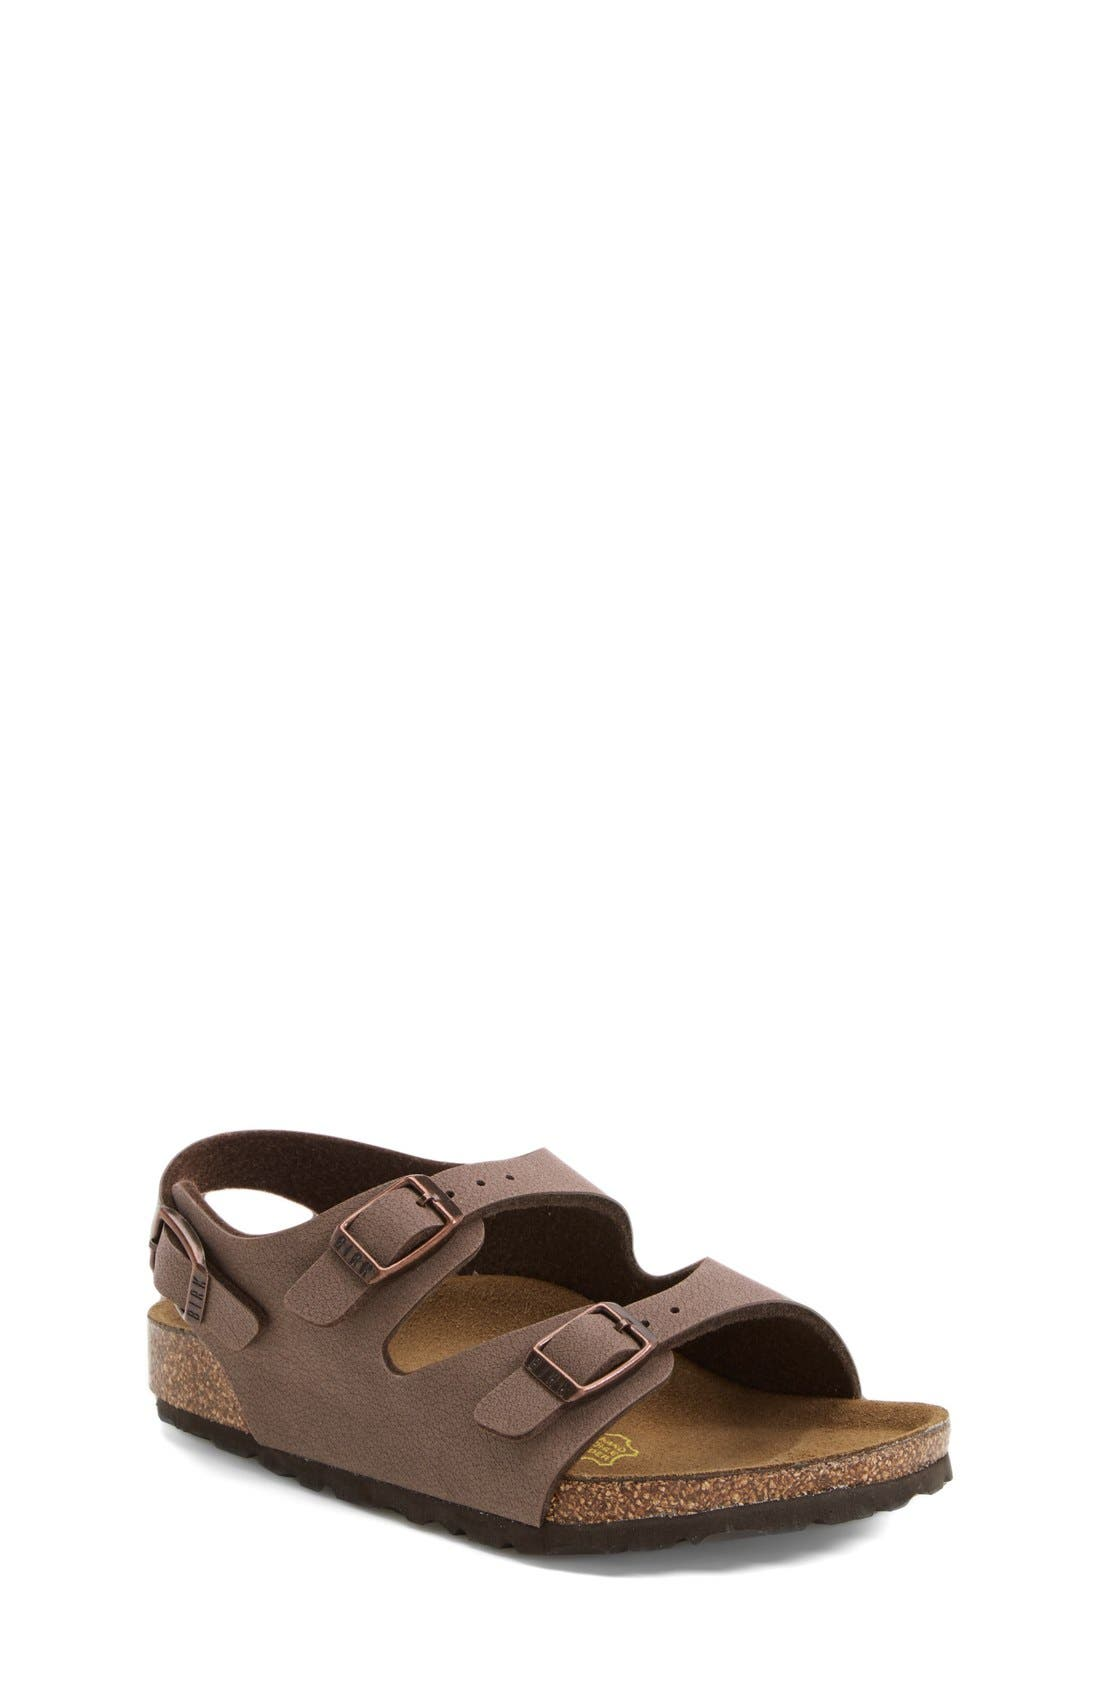 Birkenstock 'Roma' Sandal (Walker, Toddler & Little Kid)